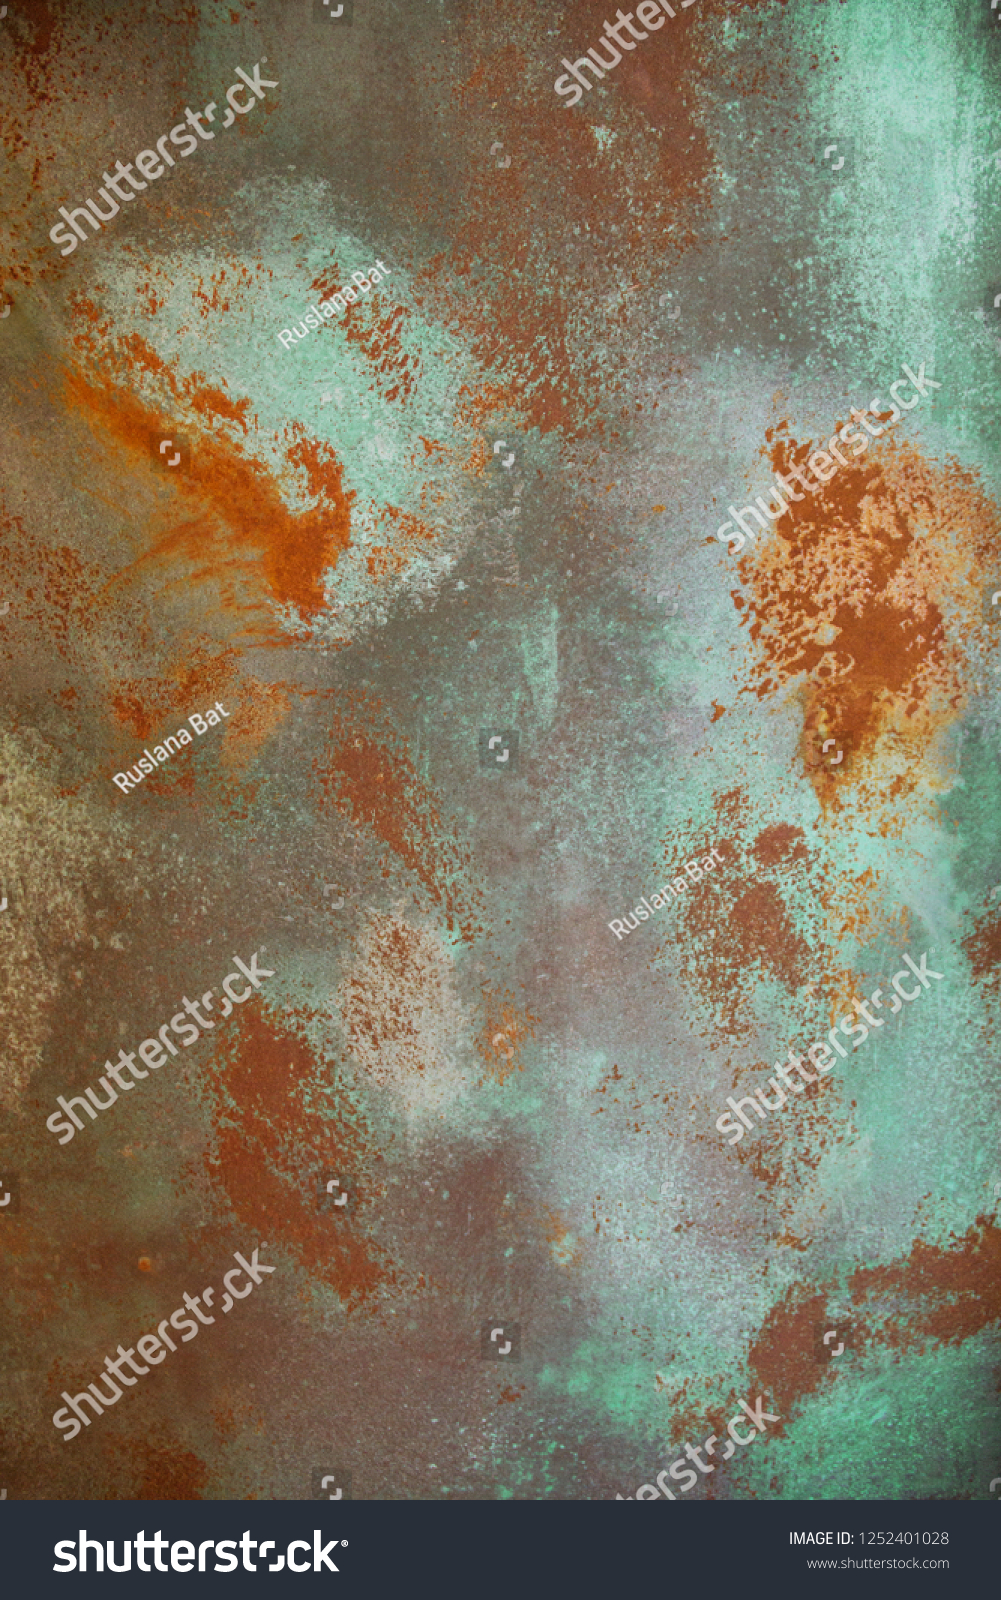 Closeup Oxidized Copper Textured Wall Turquoise Stock Photo